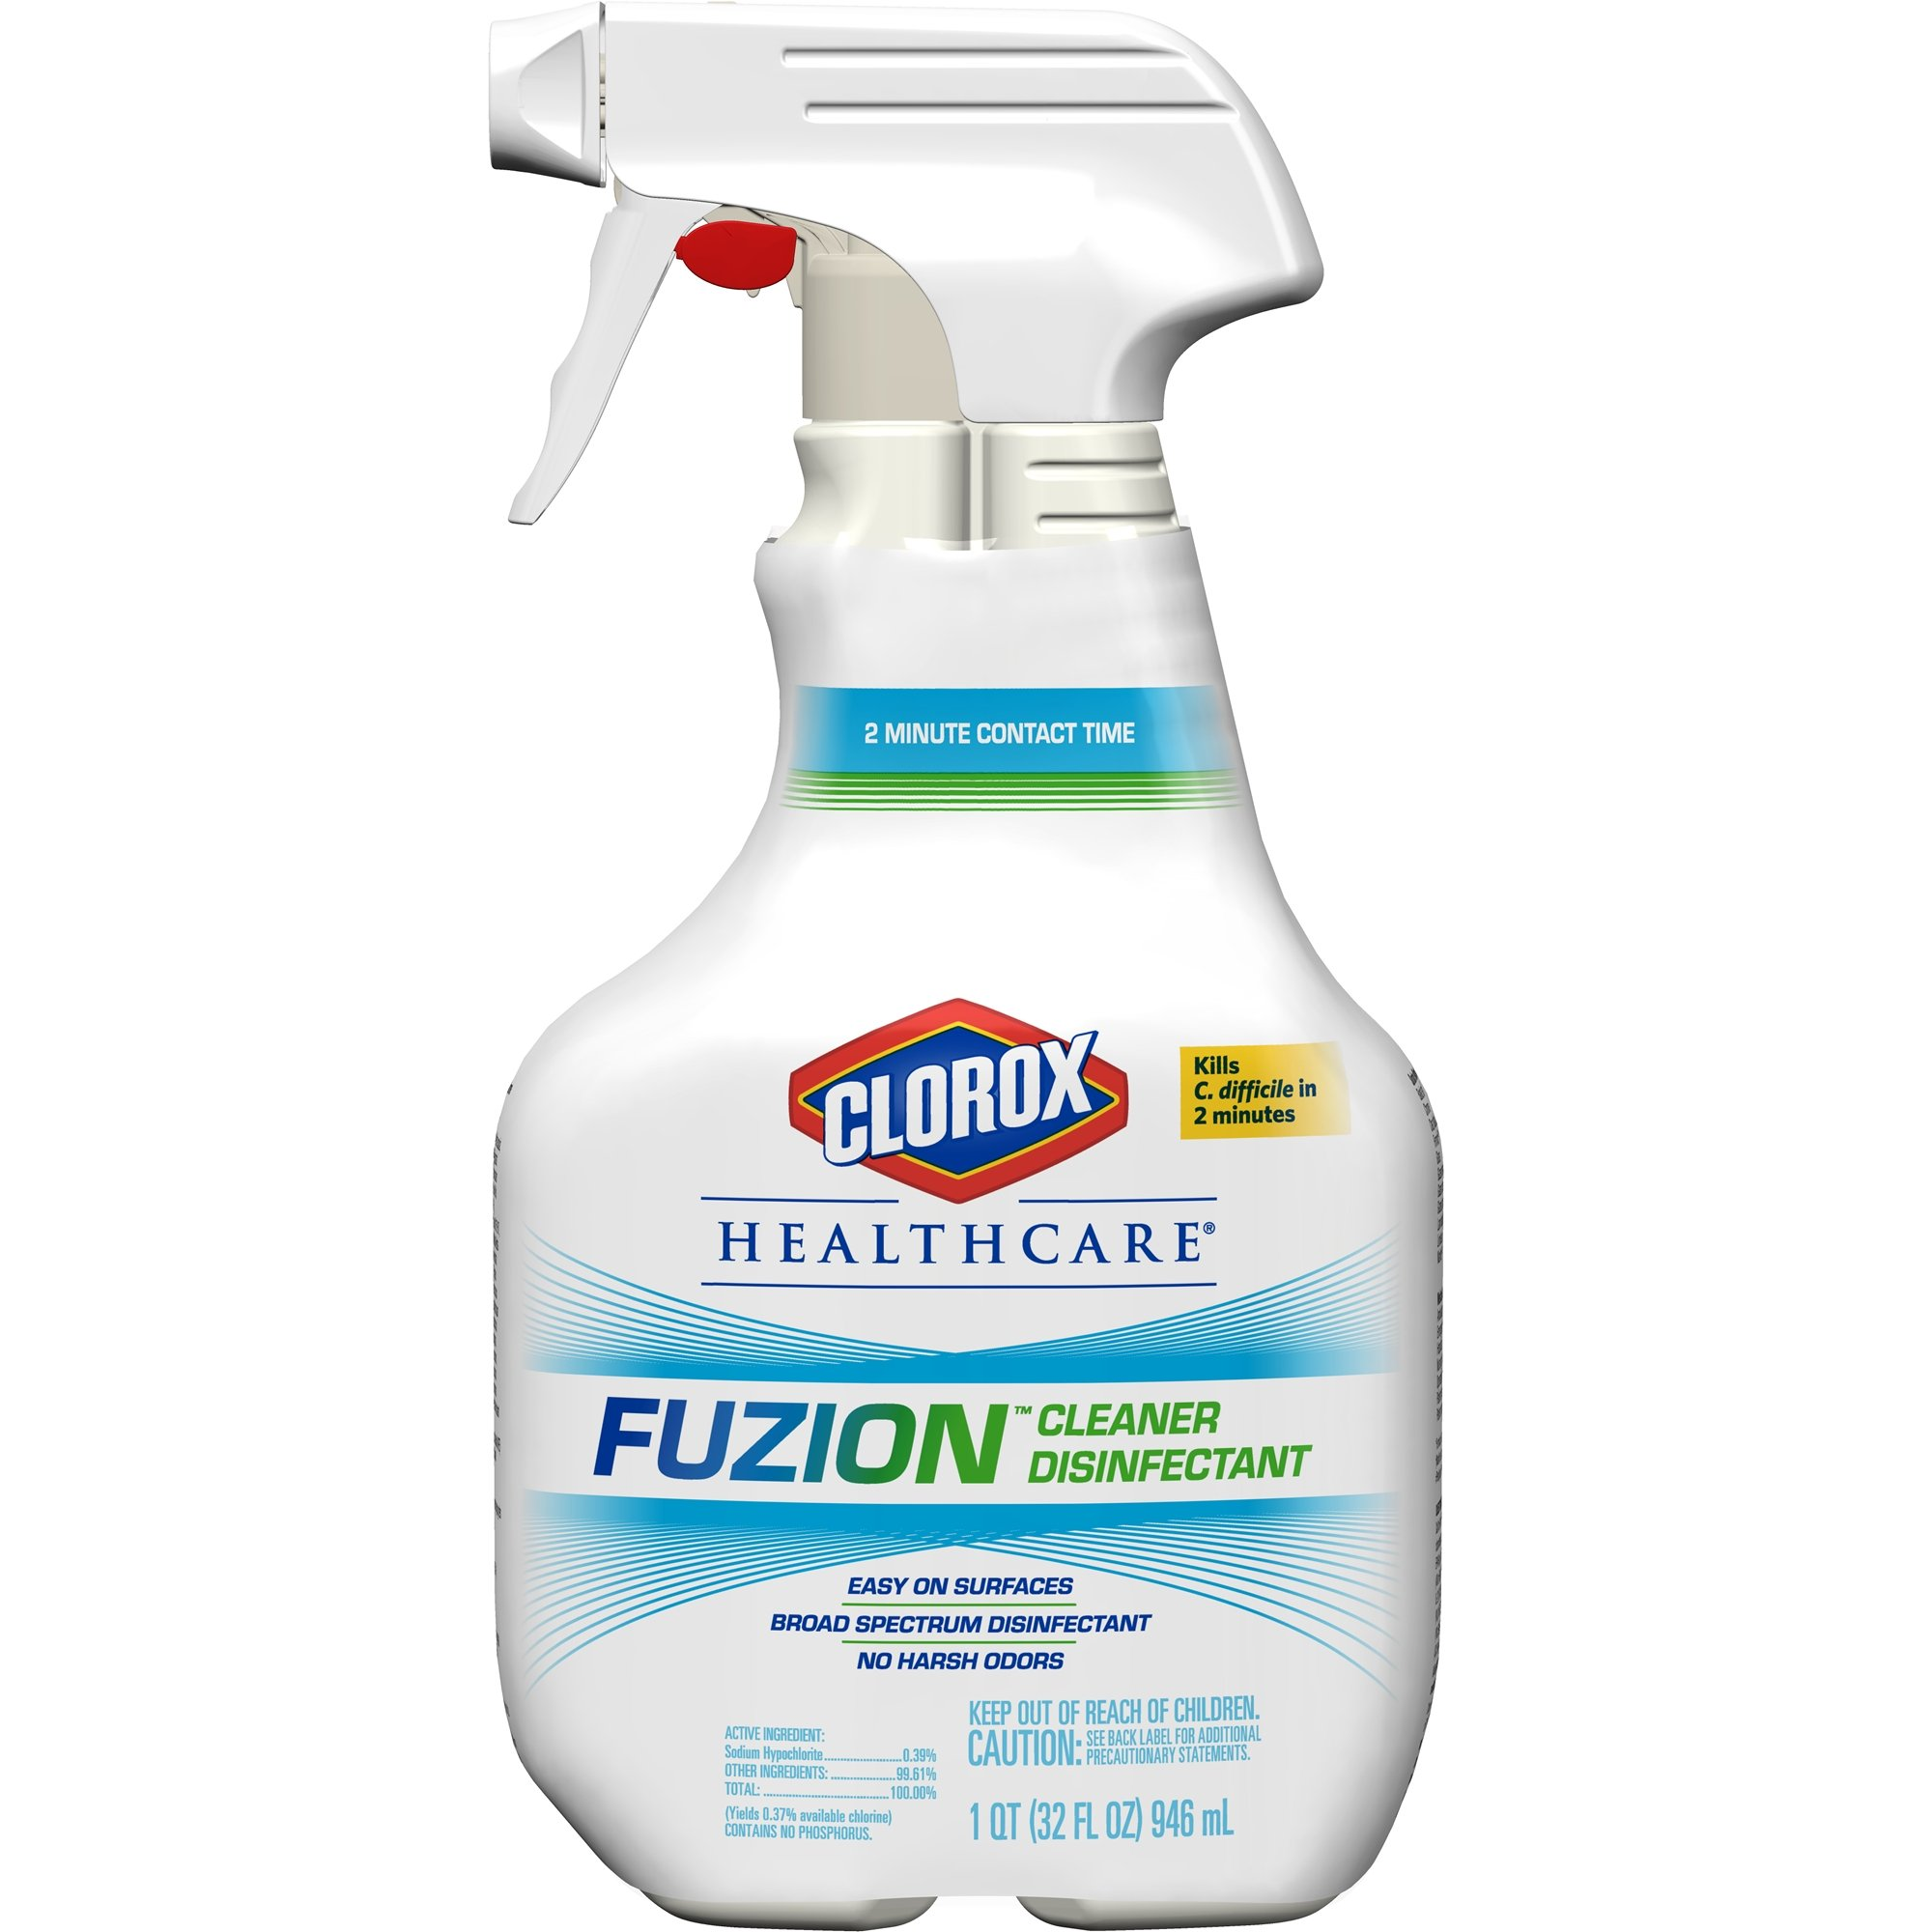 Clorox Healthcare Fuzion Cleaner Disinfectant, Spray, 32 Ounces, 9 Bottles/Case